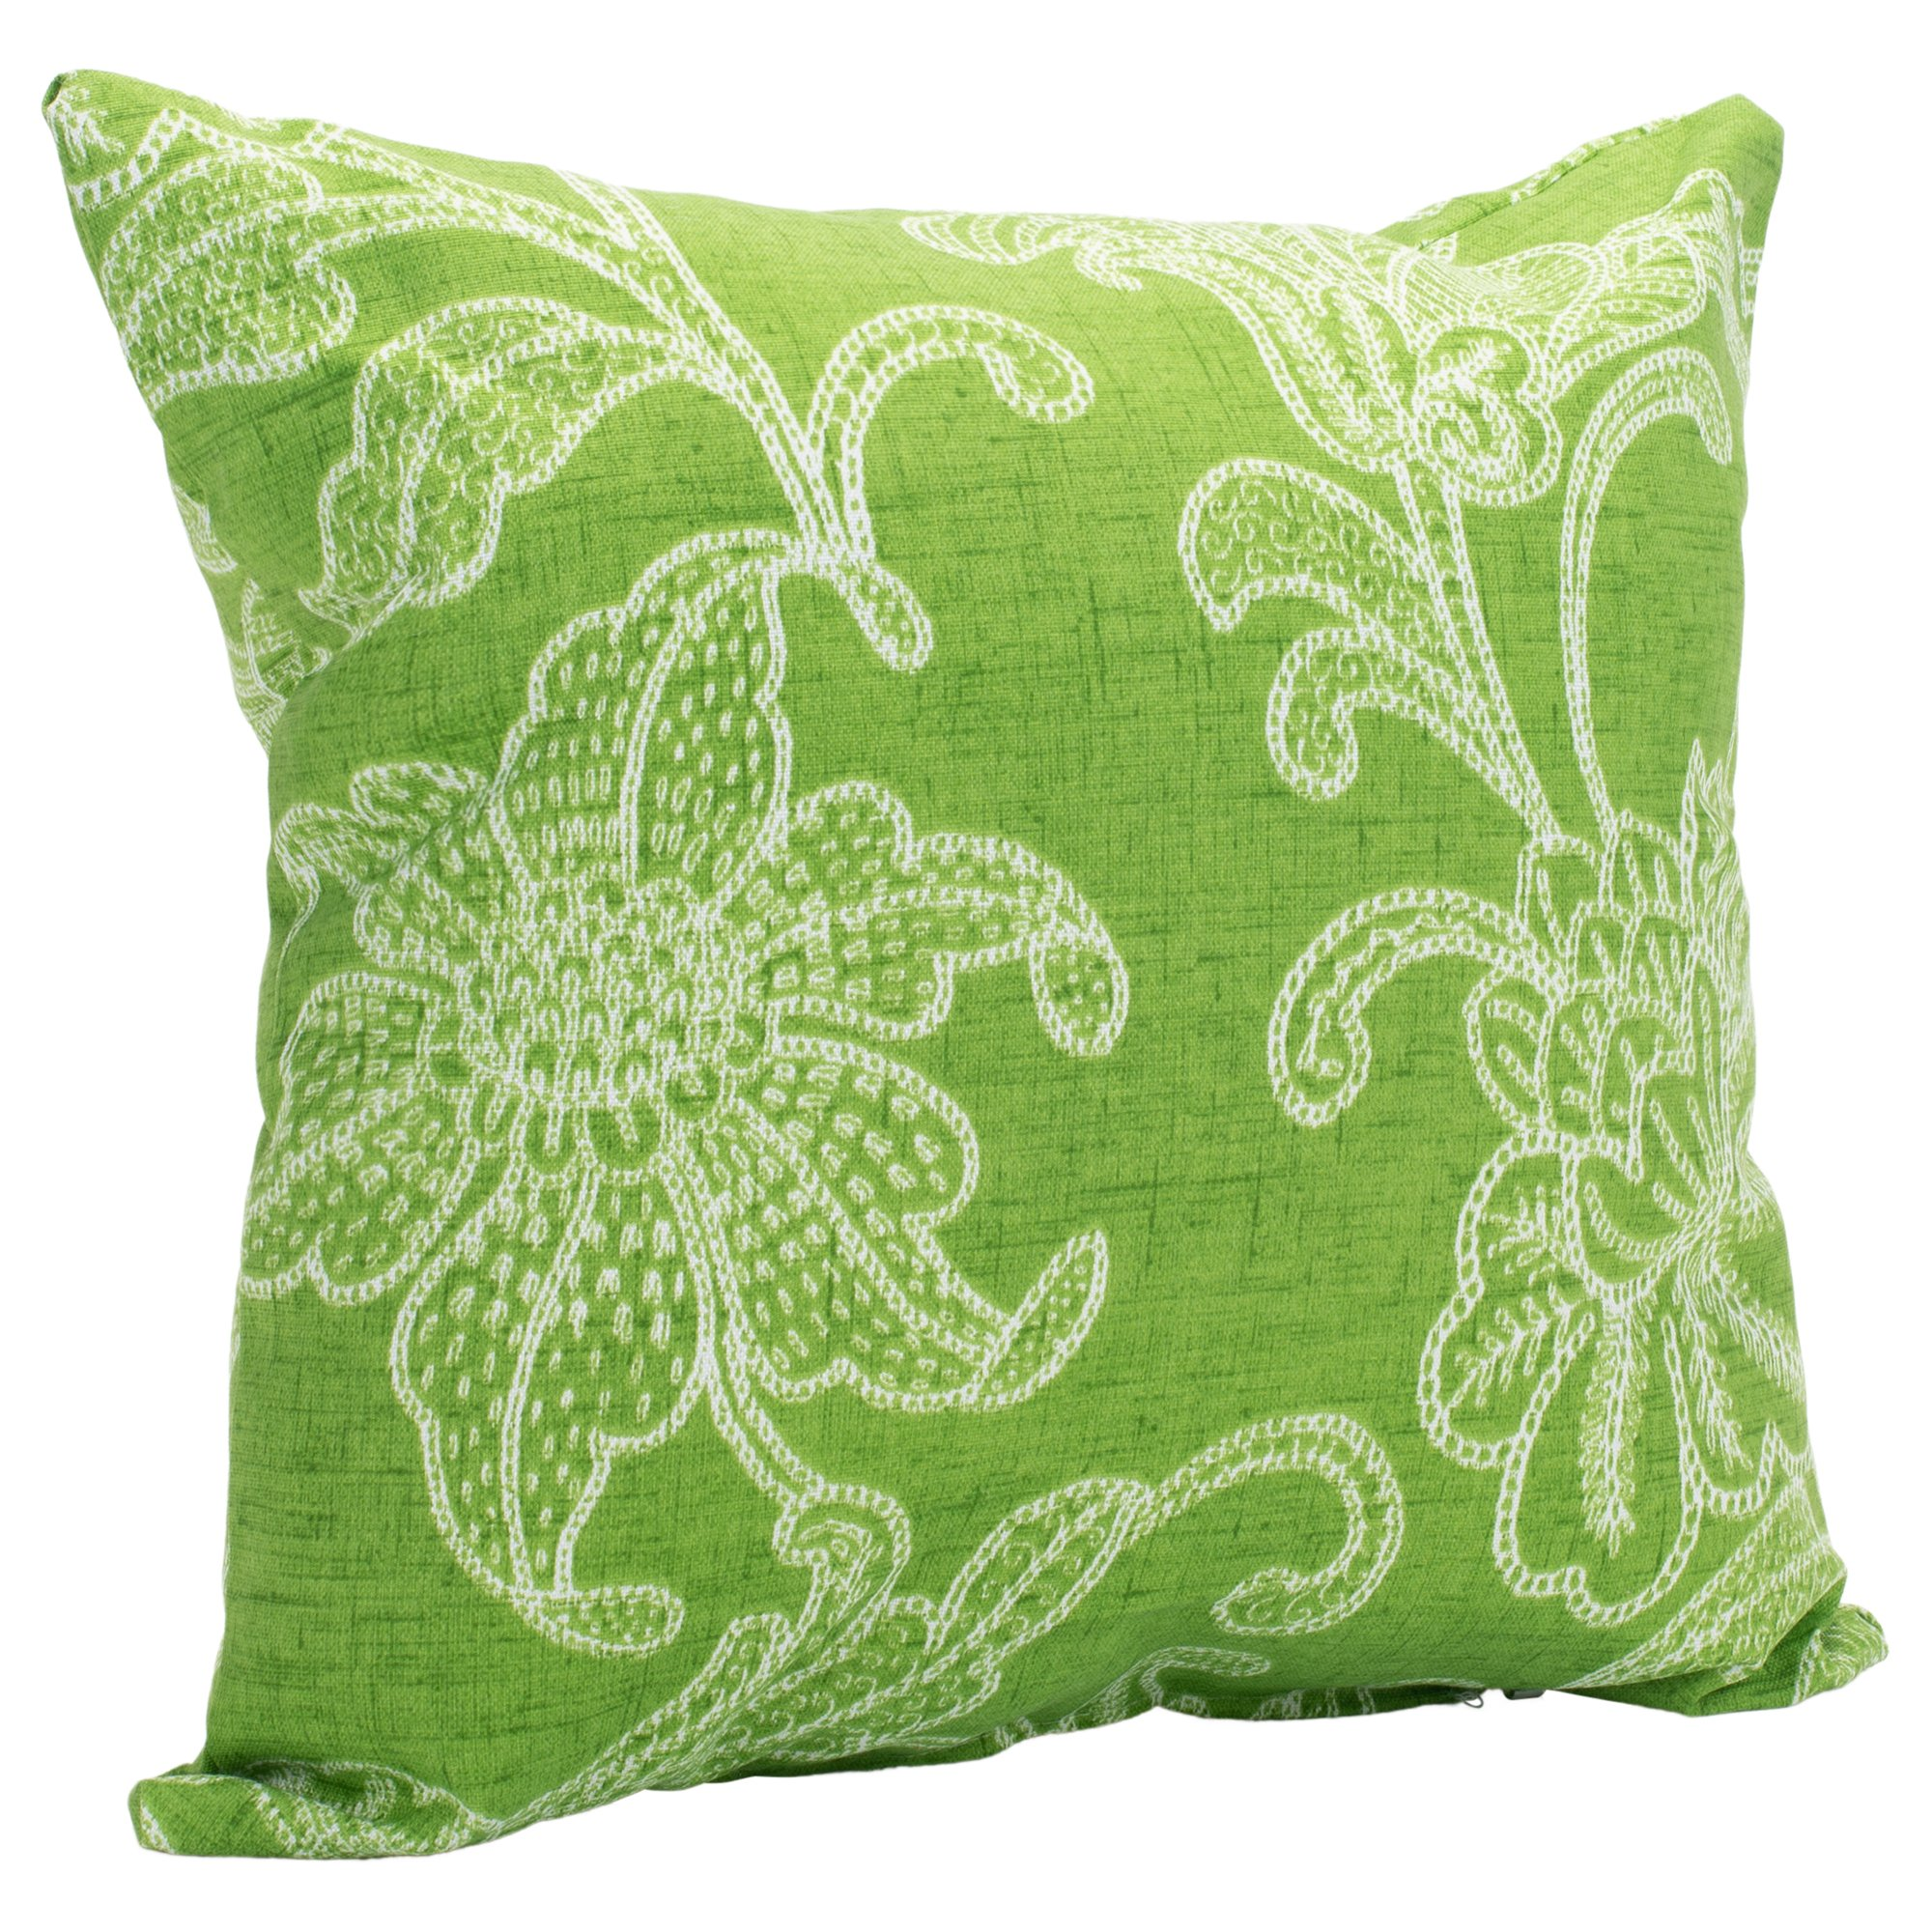 Ellie Citrus Lime Green Floral 16 x 16 Indoor Outdoor Throw Pillow